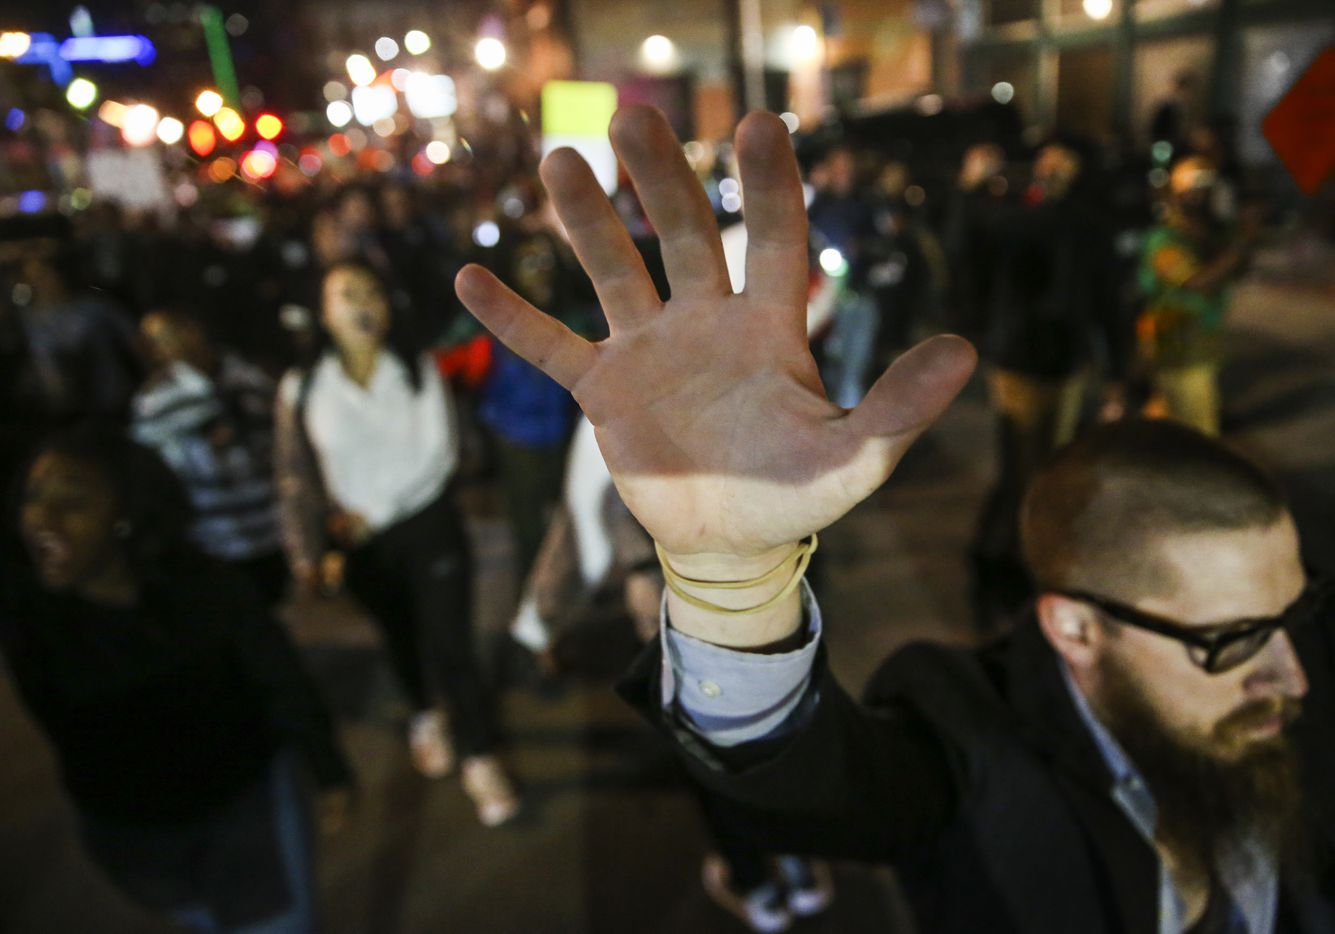 Demonstrators march through the street during a protest Saturday, March 23, 2019 in Dallas' Deep Ellum neighborhood.